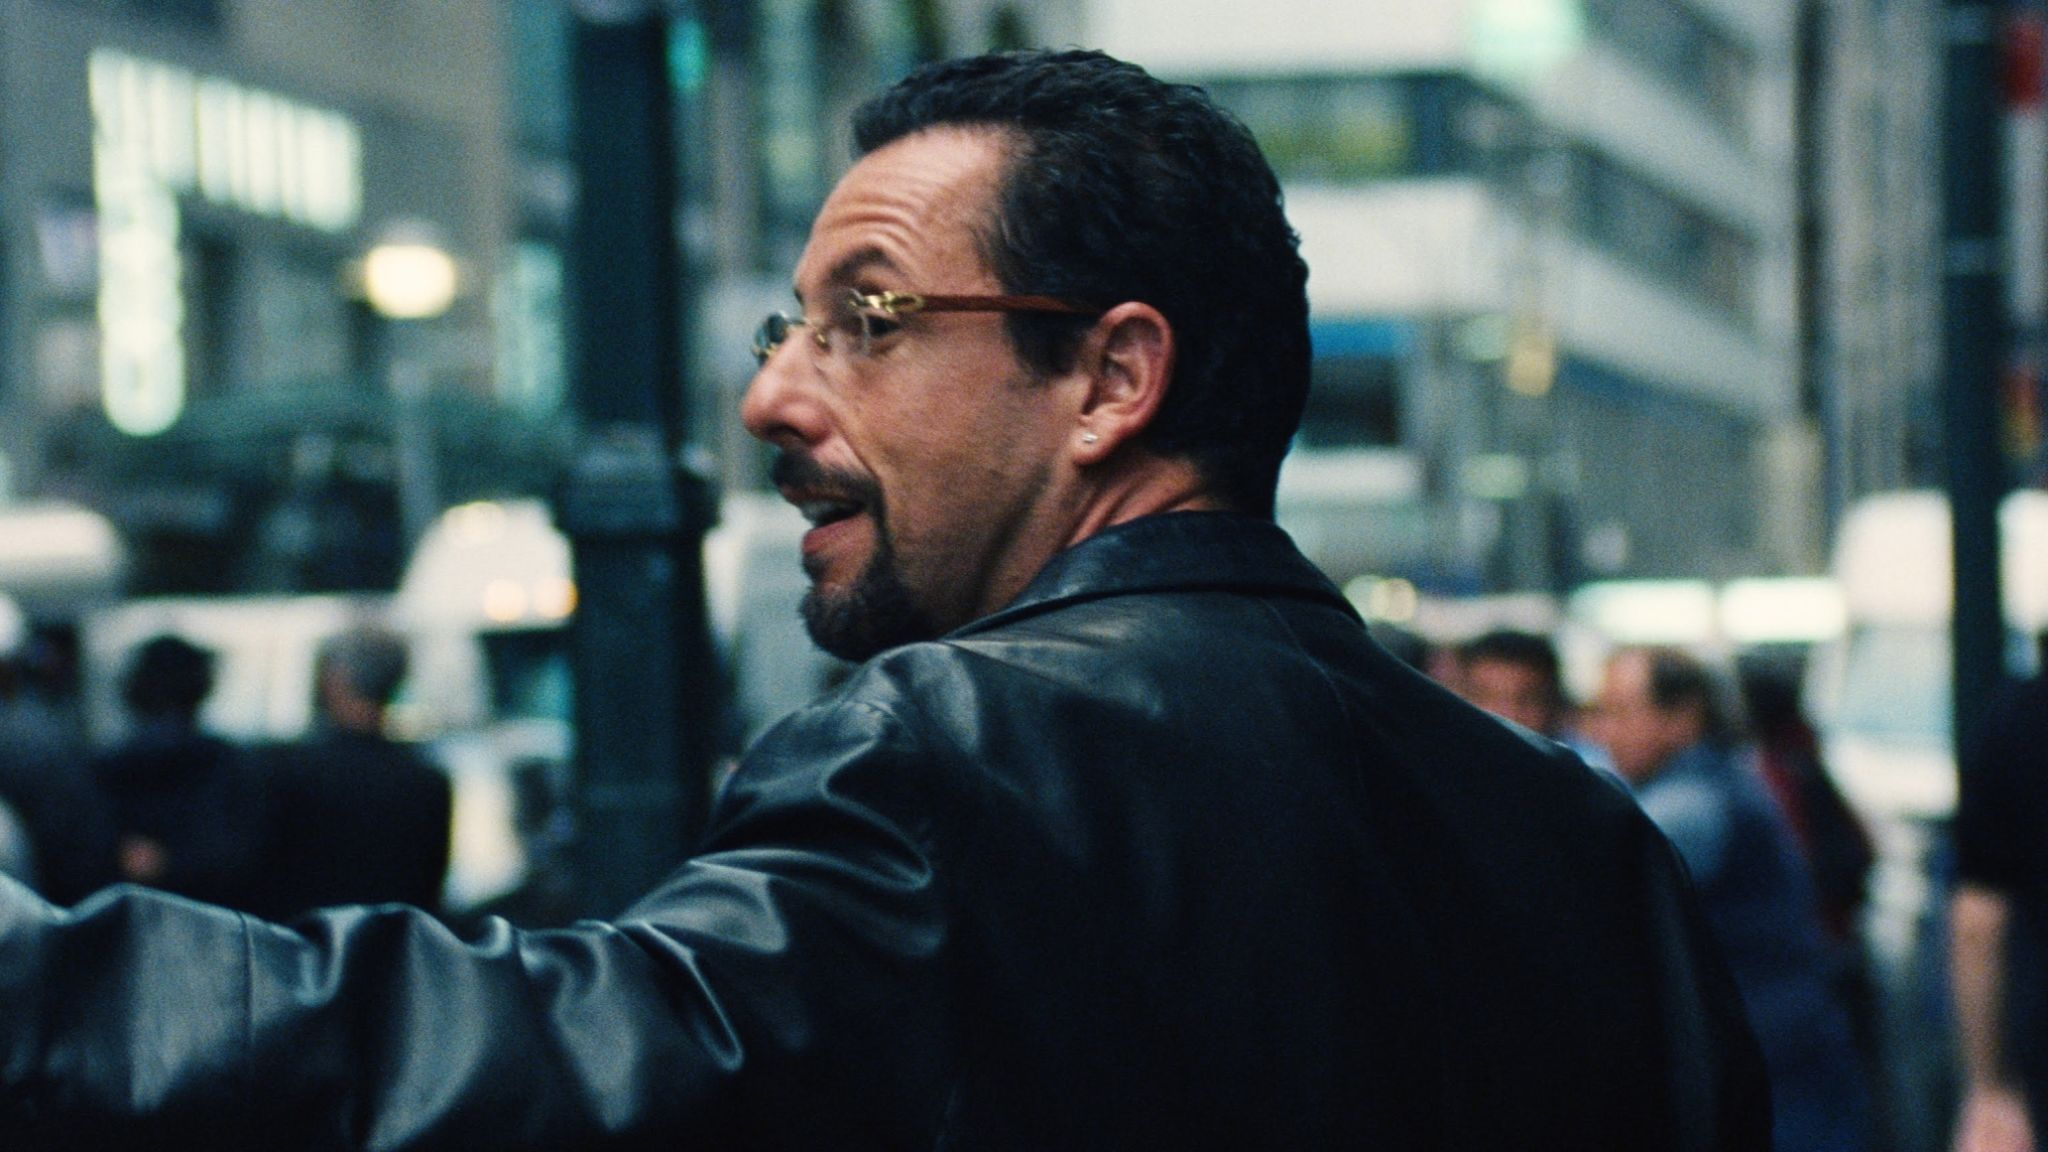 Adam Sandler is perhaps better known for his comedy roles. Pic: Netflix